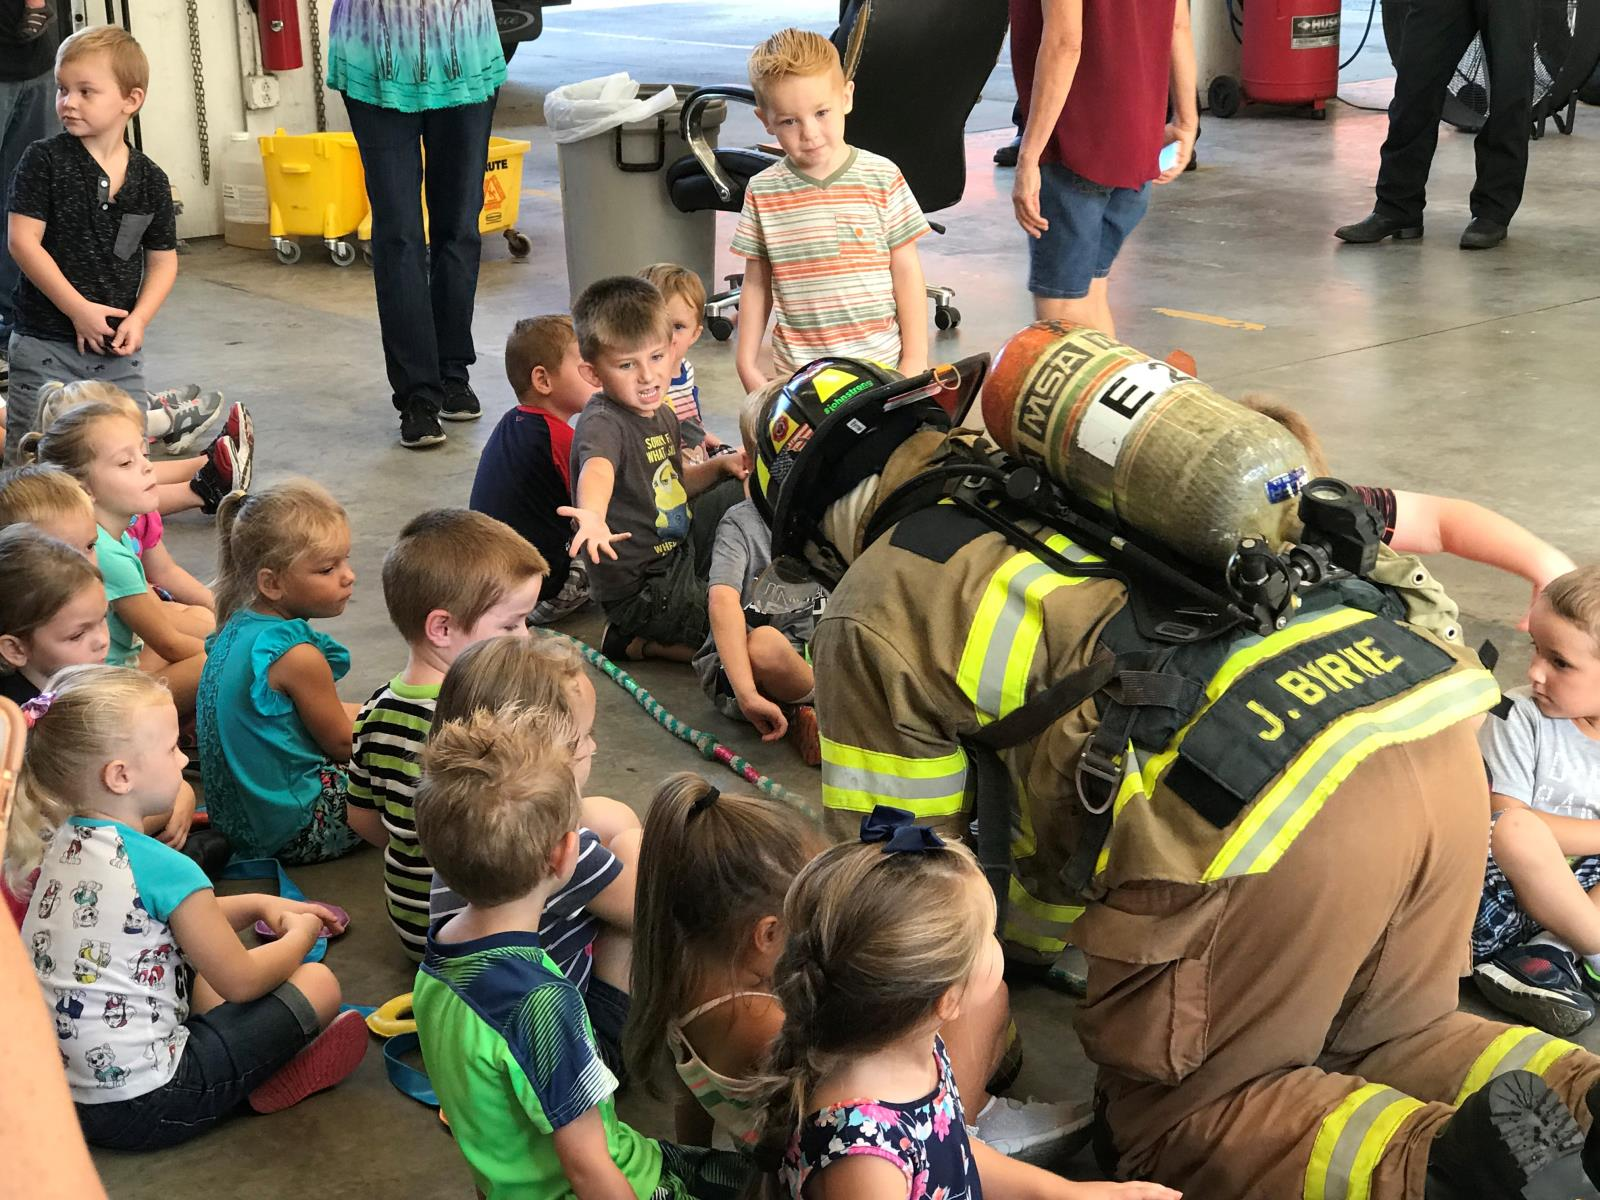 Firefighter crawling on floor in full gear around kids during visit